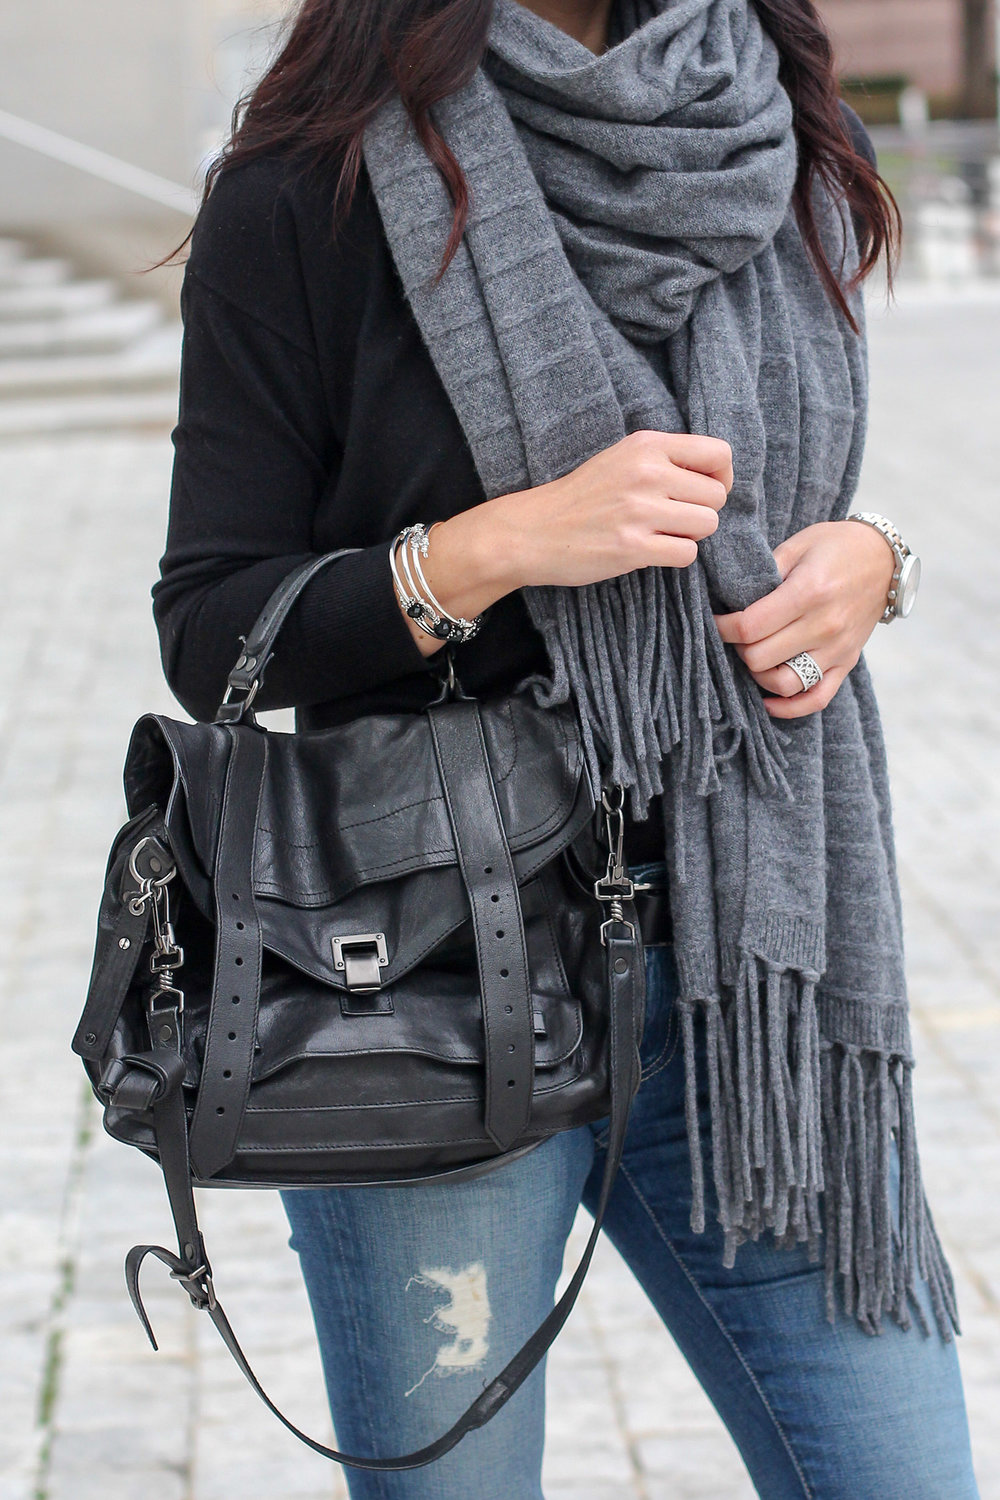 Proenza Schouler PS1 Bag, Oversized Scarf